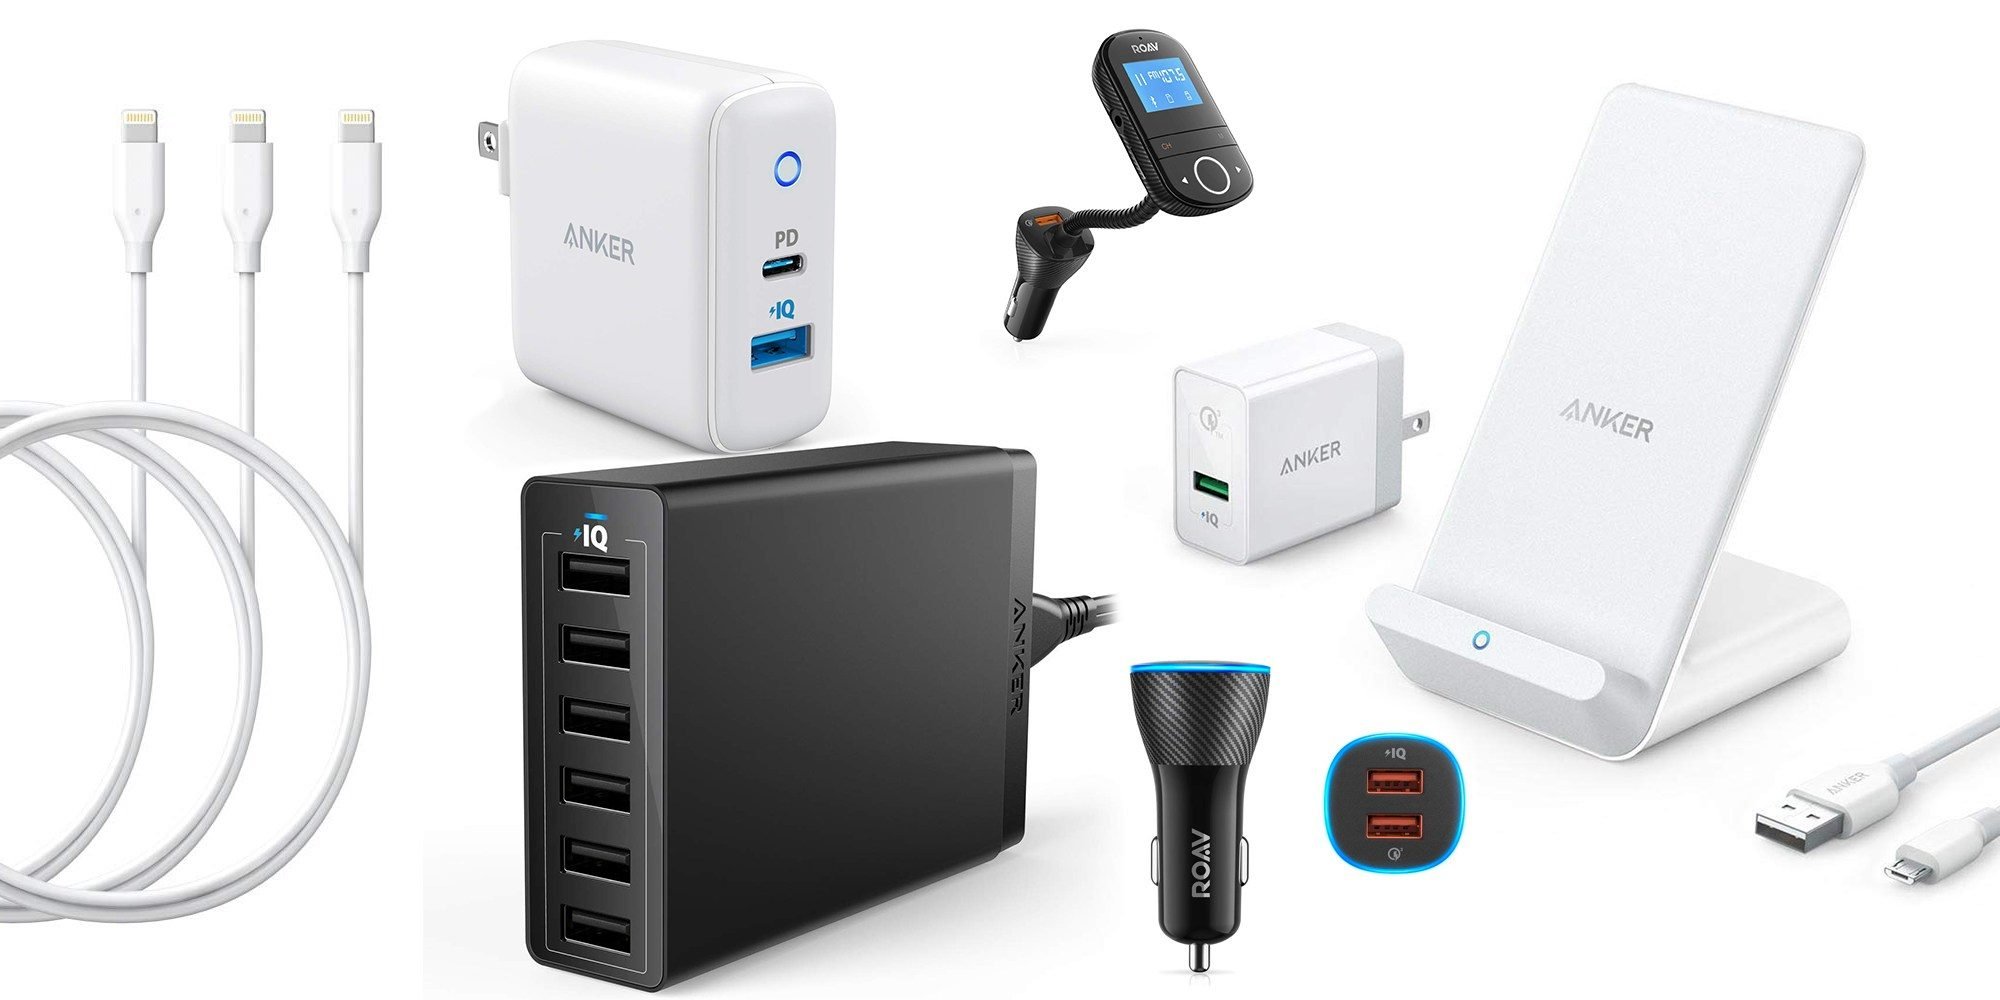 9to5Toys Lunch Break: Anker Accessory Gold Box from $7.50, Google WiFi OnHub Router $79, Amazon SSD Sale from $40, more